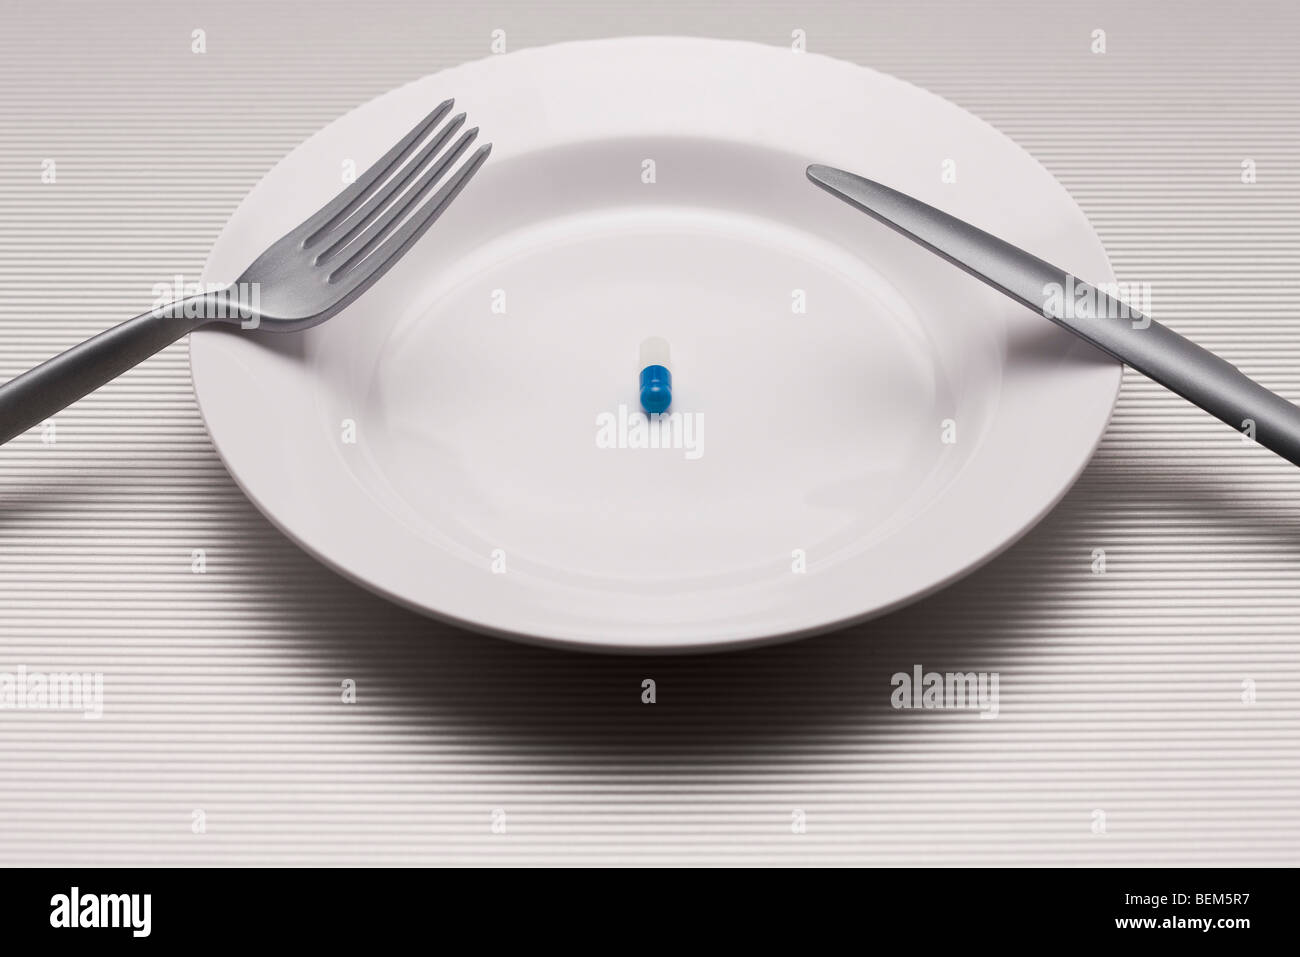 Food concept, single pill on plate - Stock Image